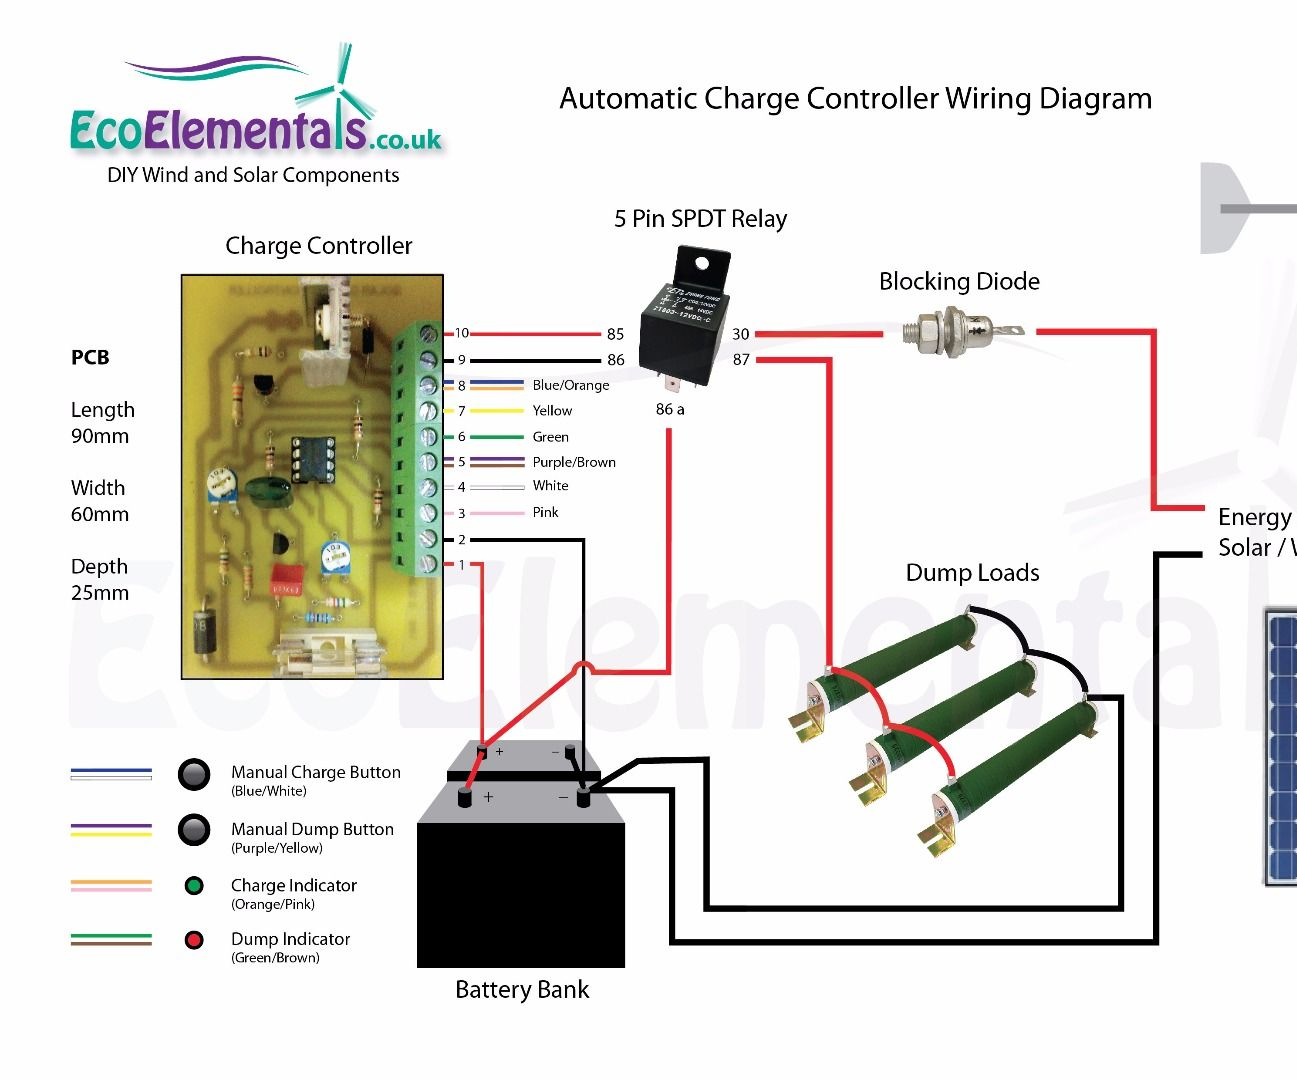 hight resolution of charge controller wiring diagram for diy wind turbine or solar panels wind turbine wiring diagram wind turbine wiring diagram